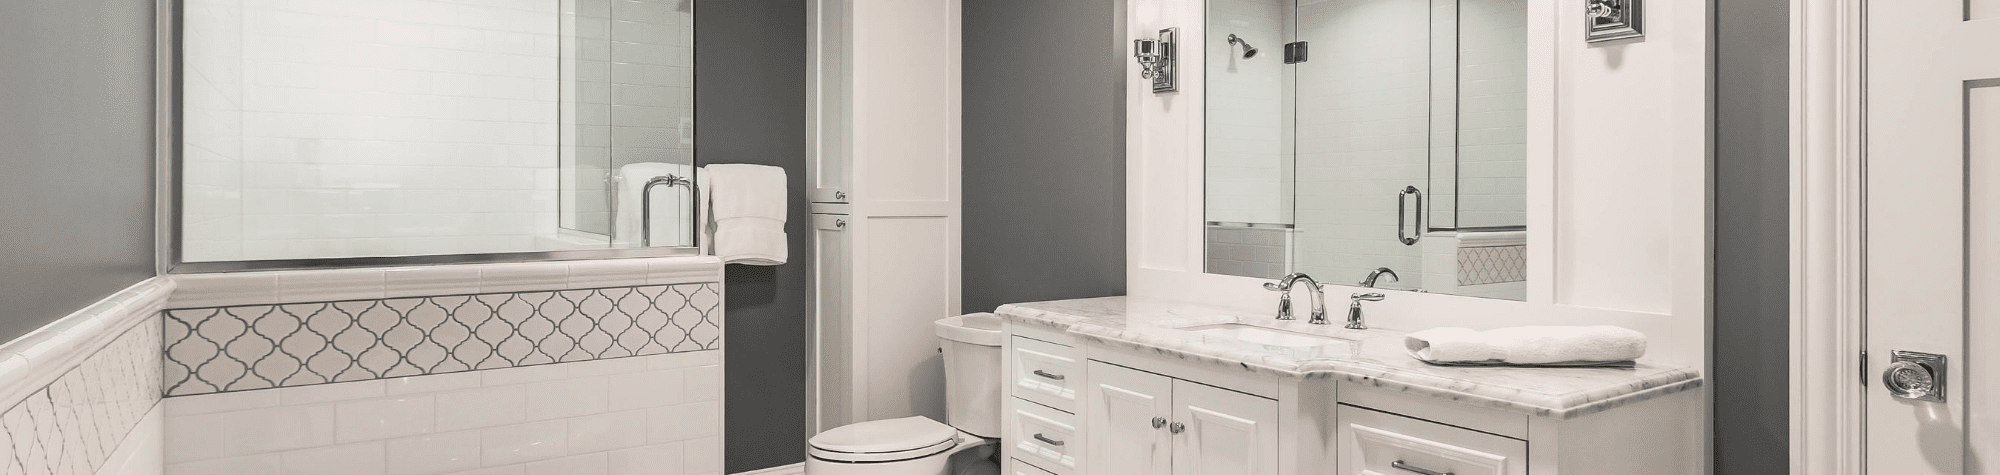 Bathroom Remodel Trends & Ideas